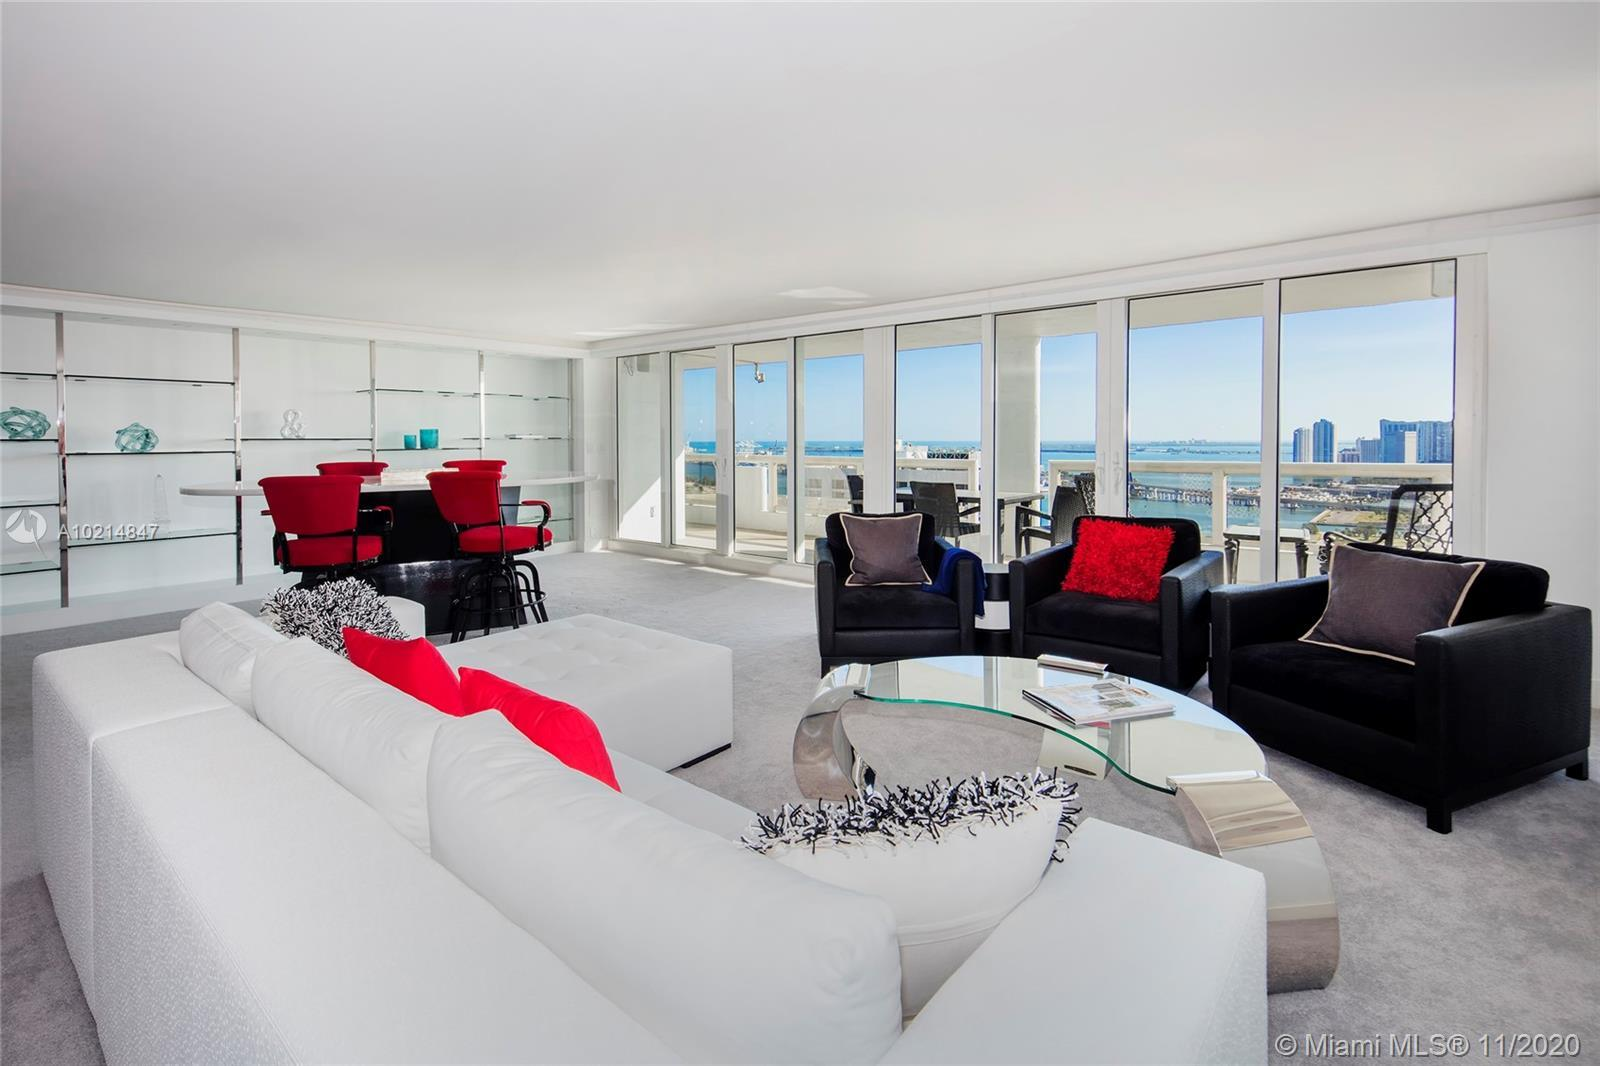 This amazing Penthouse in the /sky at The GRAND features breathtaking panoramic views over the Atlan